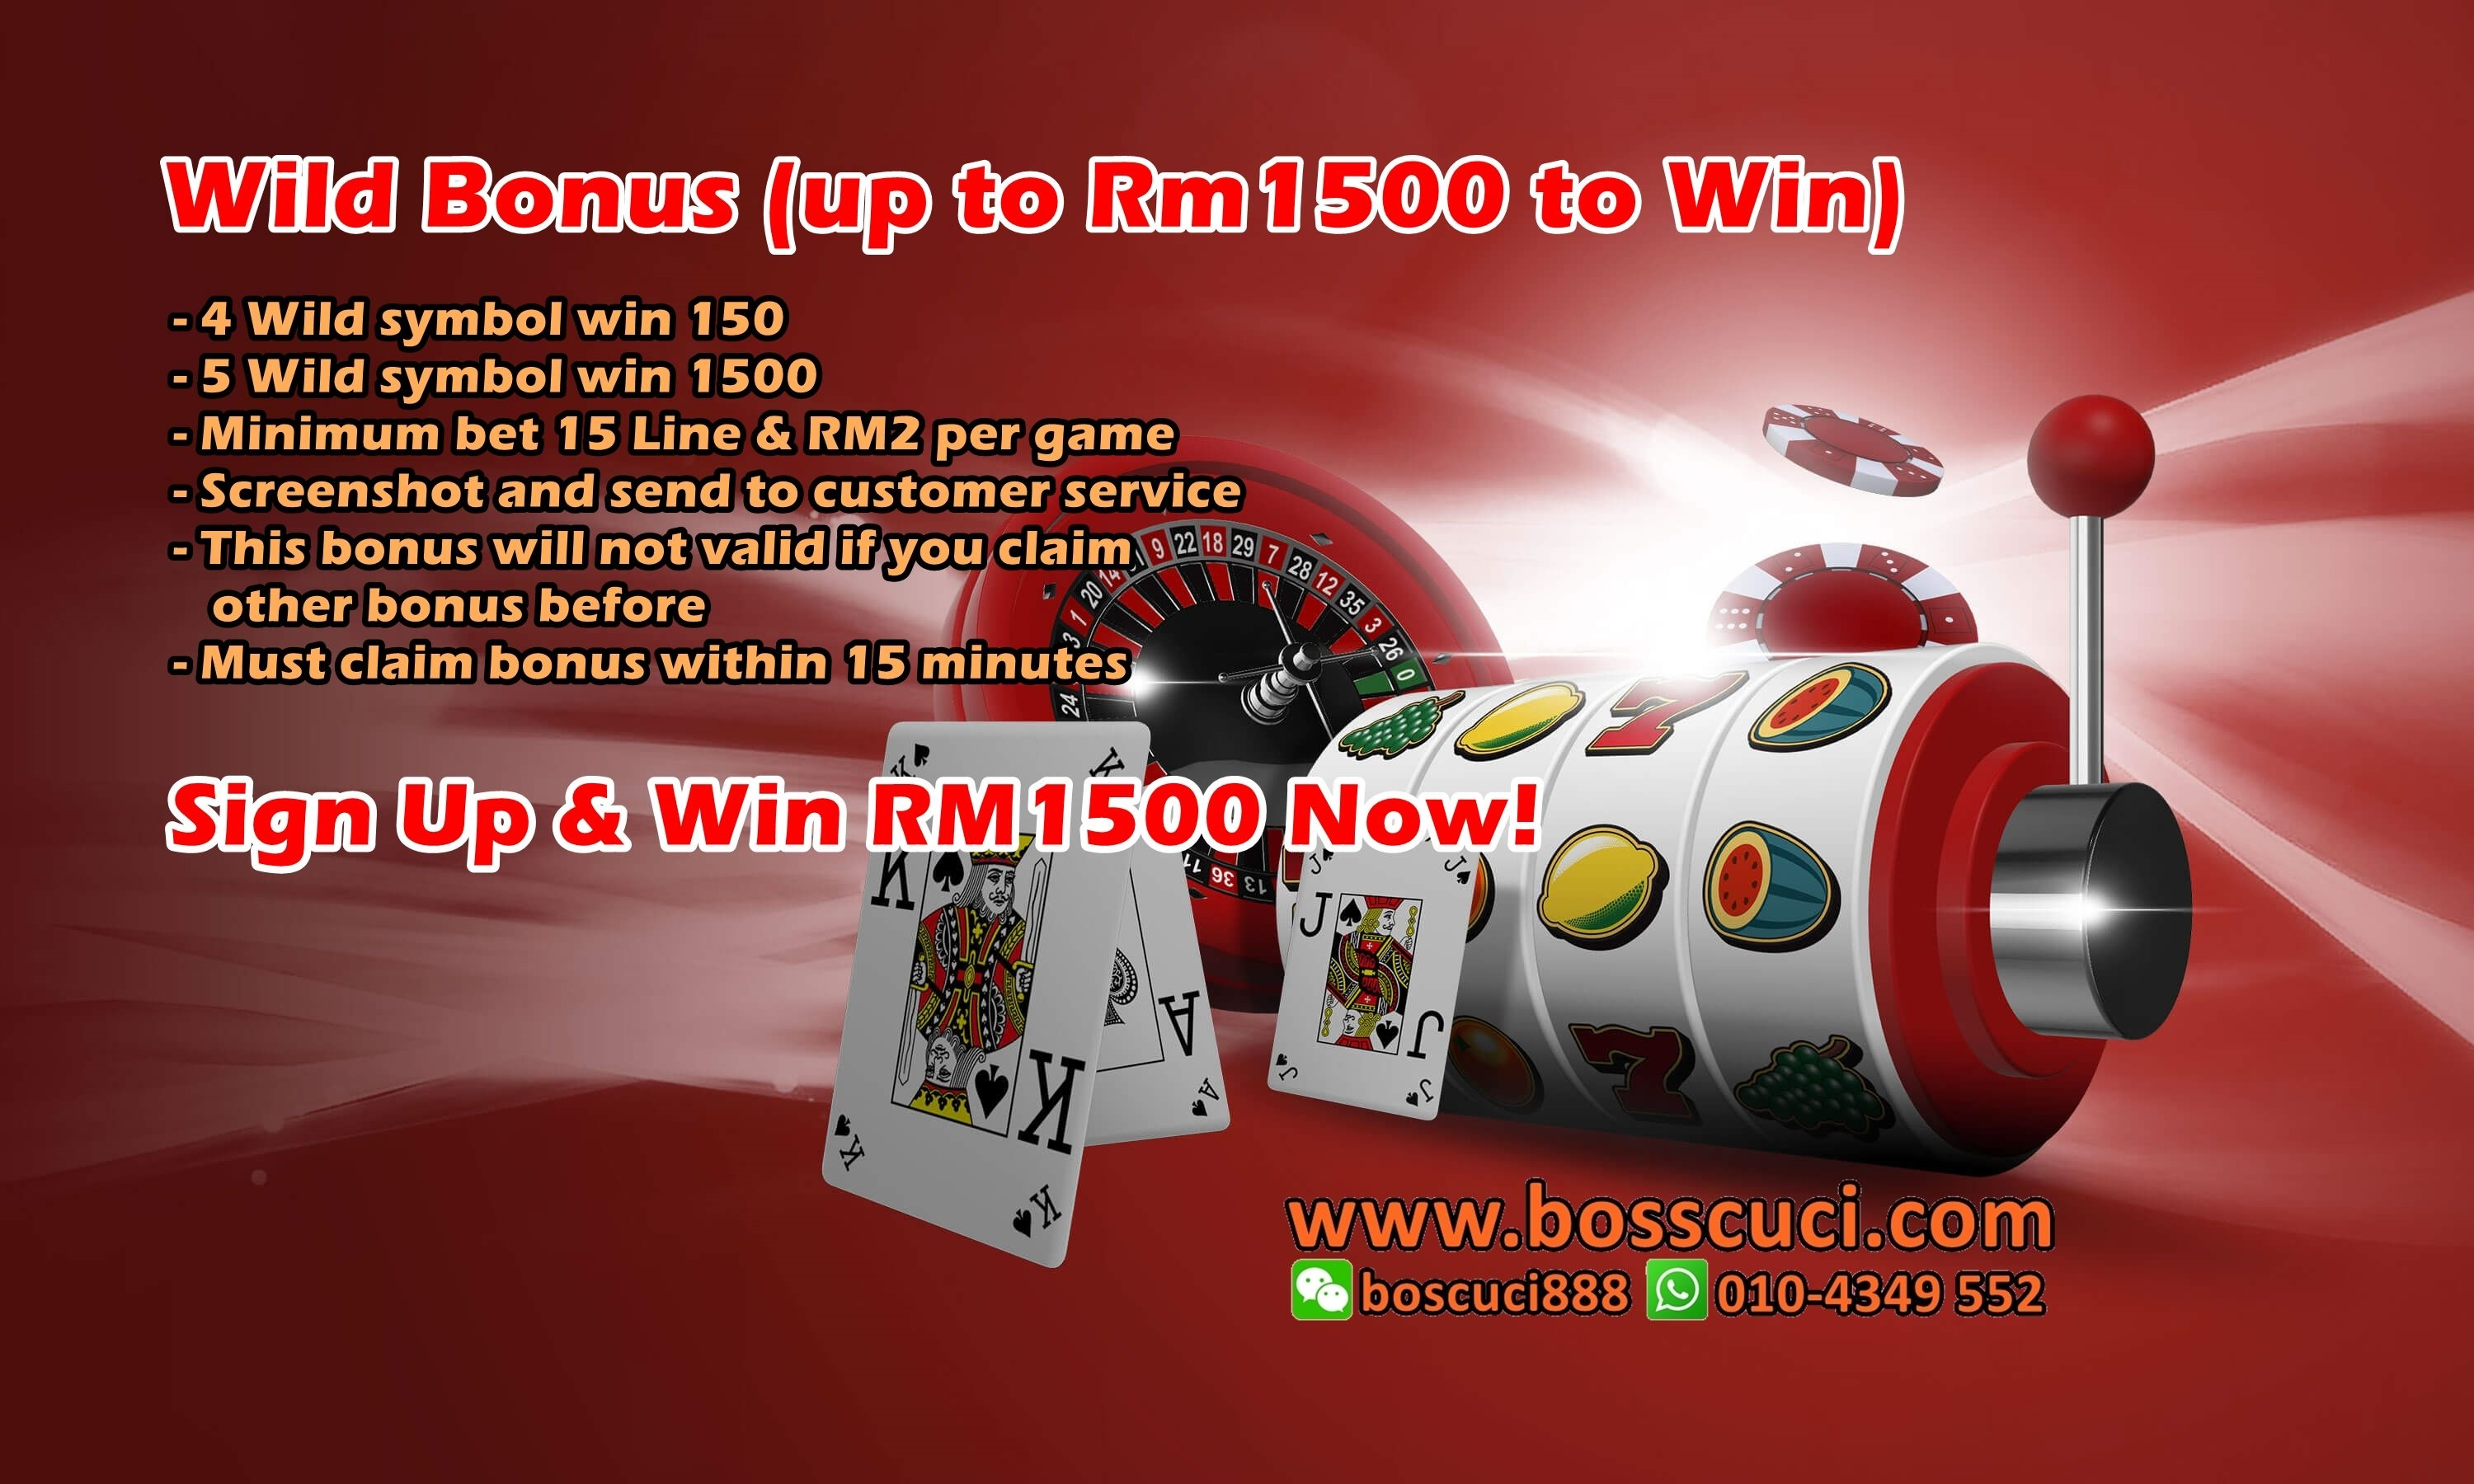 130 Free Casino Spins at 888 Casino